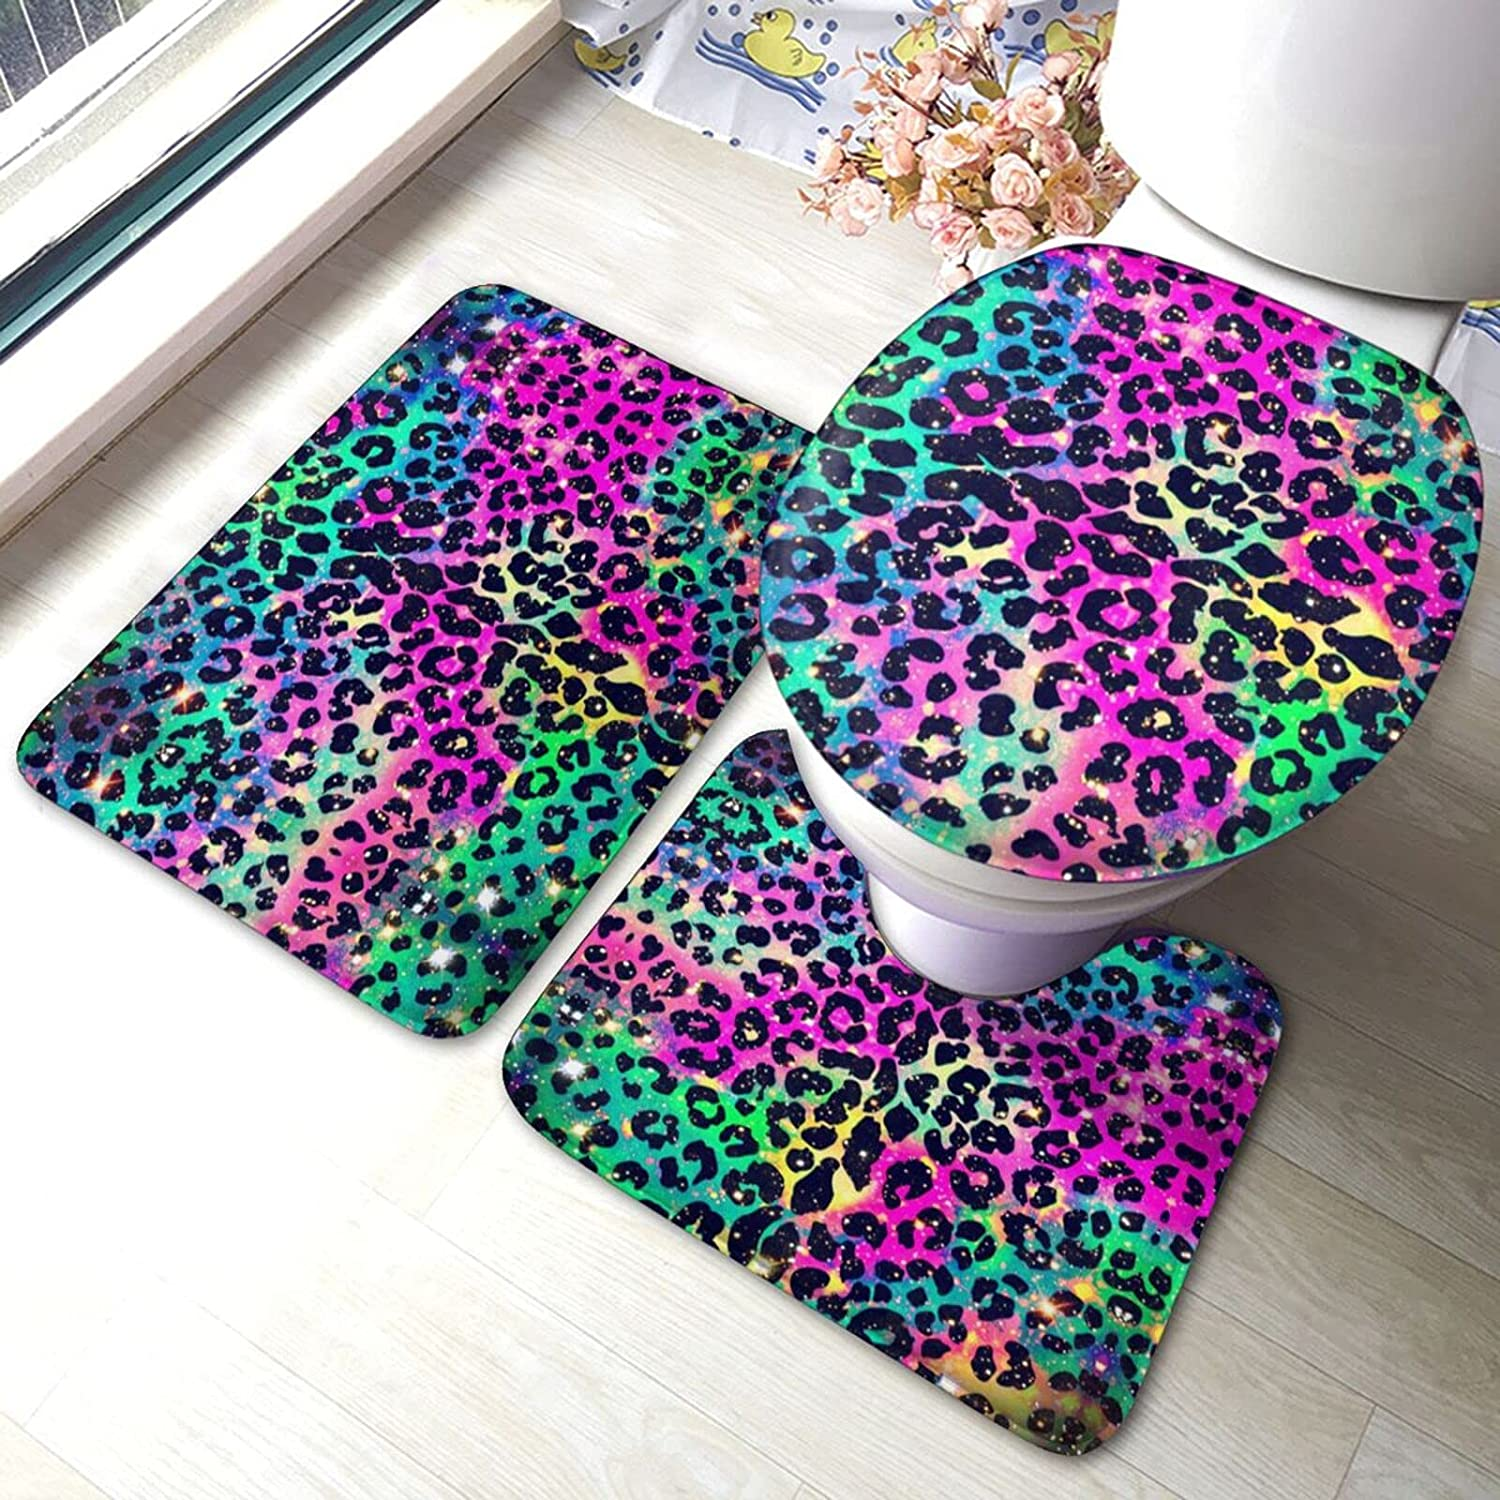 Bathroom Rug Set 3 Piece Colored Fixed price for sale Al sold out. Leopard Bath Non-Slip Printed